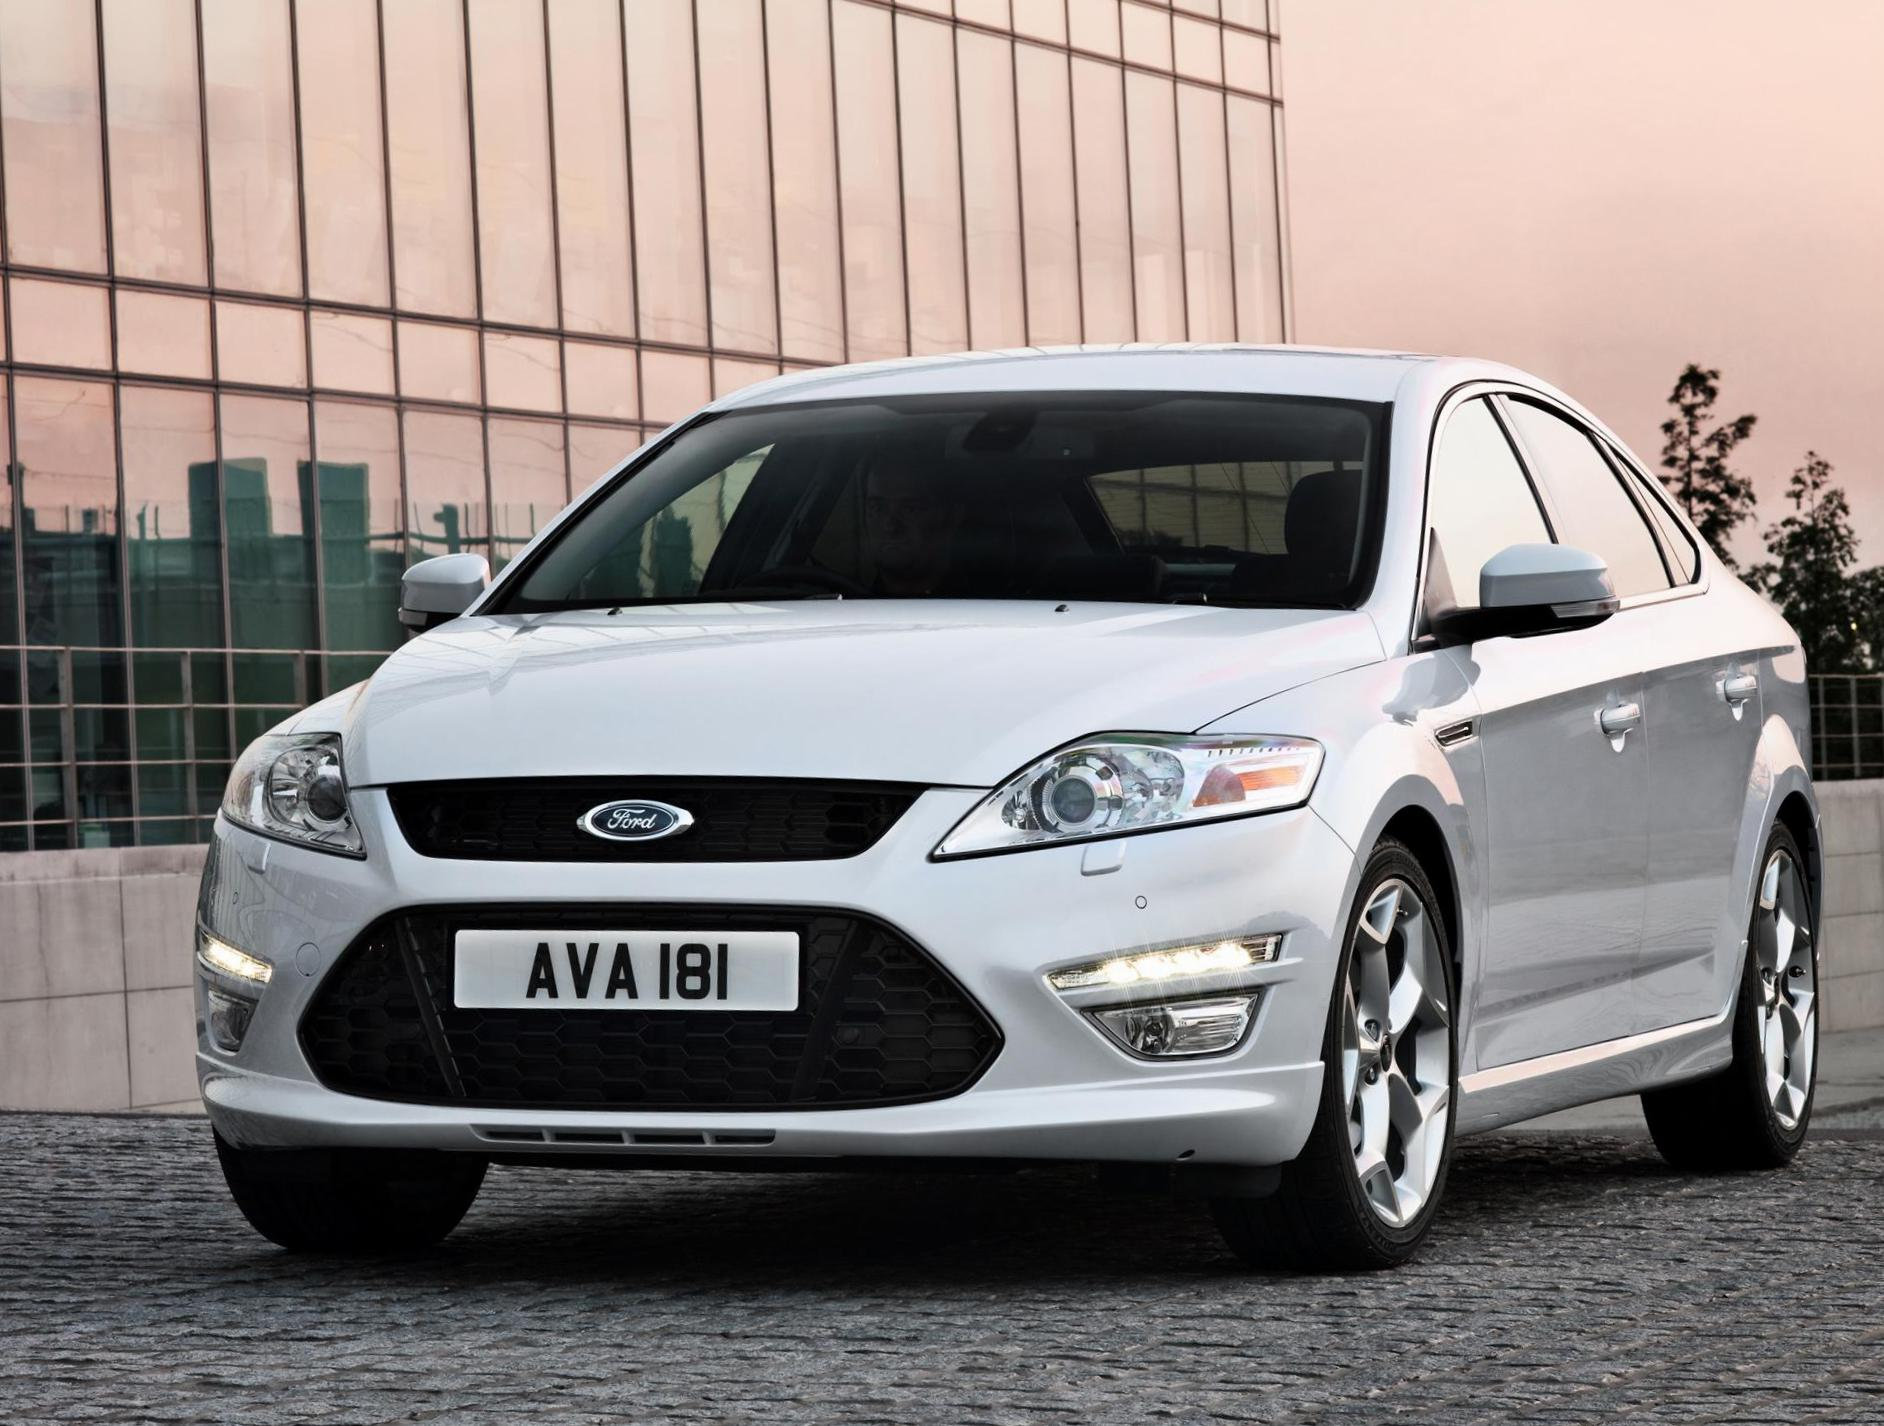 Mondeo Hatchback Ford price coupe